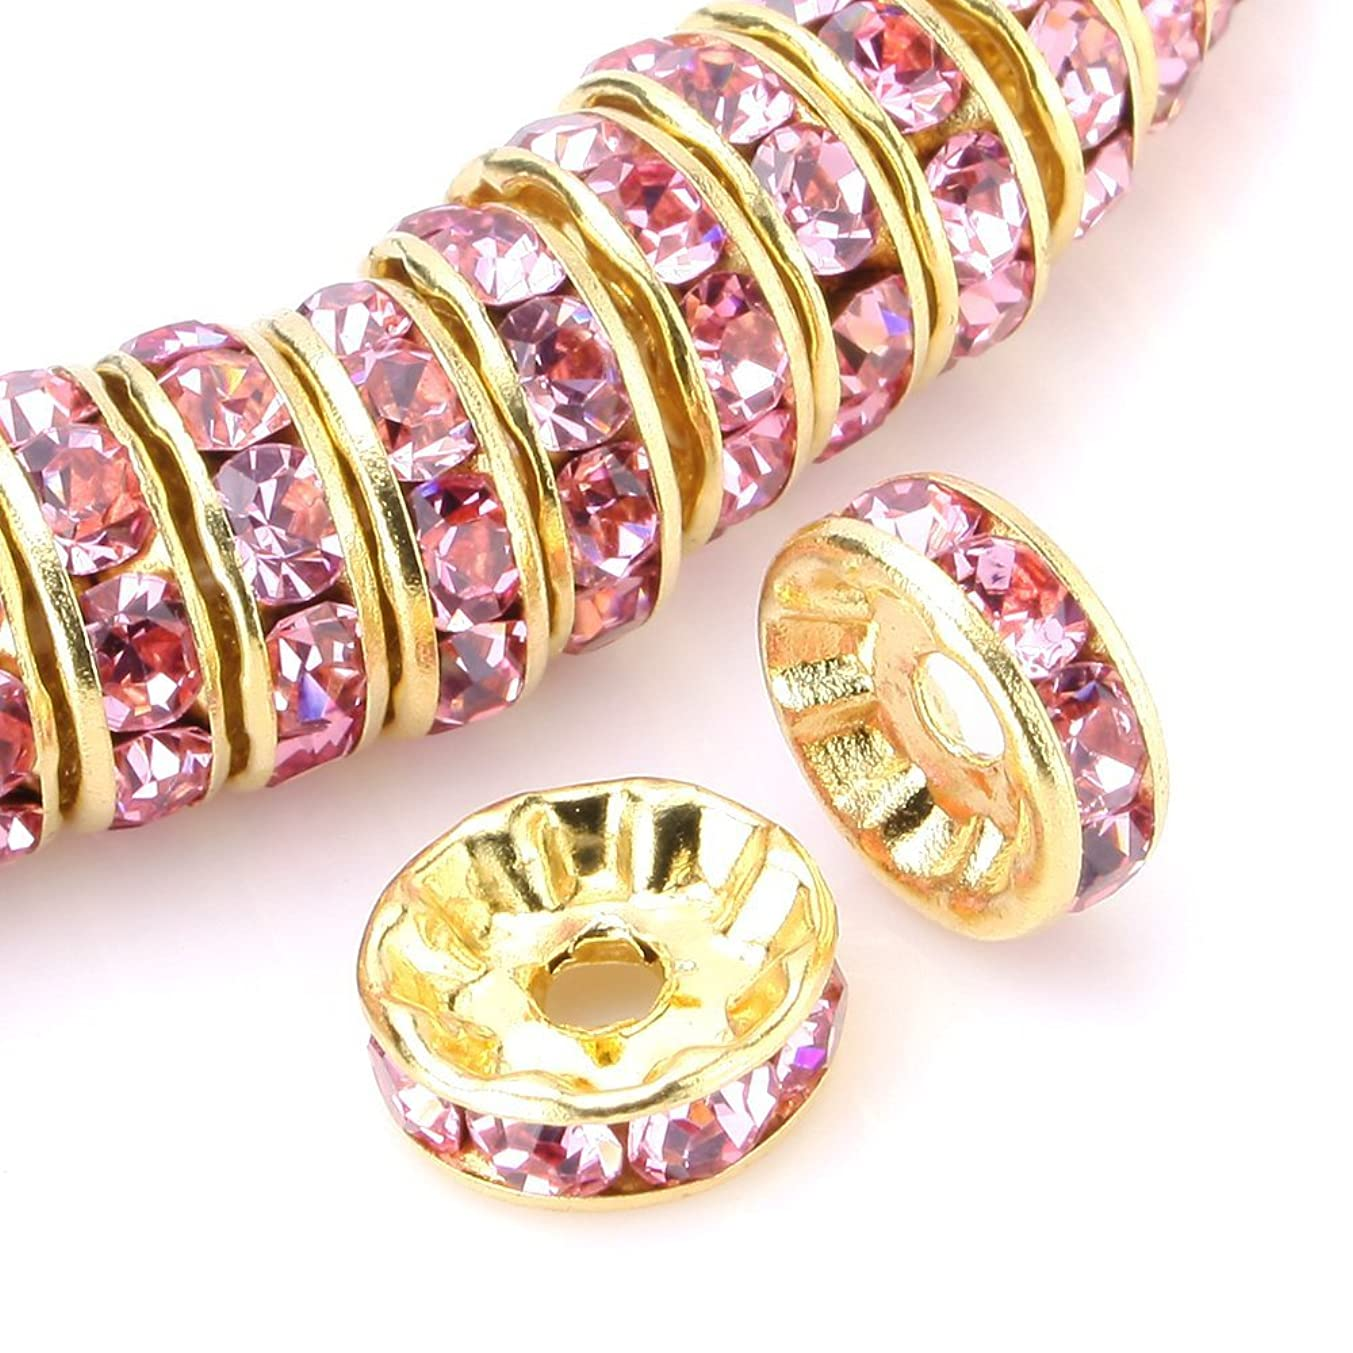 RUBYCA 100pcs Round Rondelle Spacer Bead Gold Tone 10mm Light Rose Pink Czech Crystal